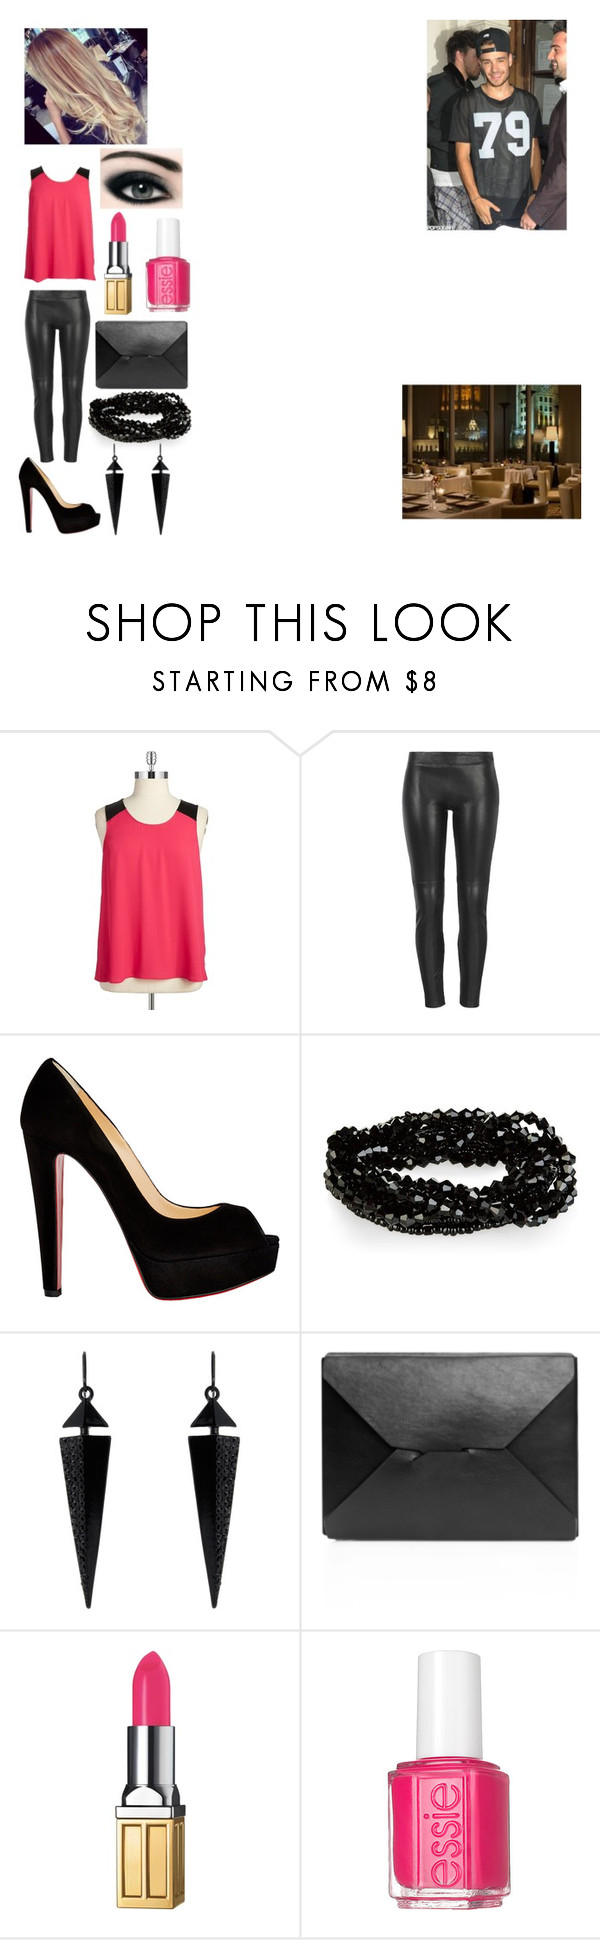 """""""Untitled #49"""" by satelligray ❤ liked on Polyvore featuring BB Dakota, MuuBaa, Christian Louboutin, Carriere, Oasis, J.W. Anderson, Payne, Elizabeth Arden, Essie and plus size clothing"""